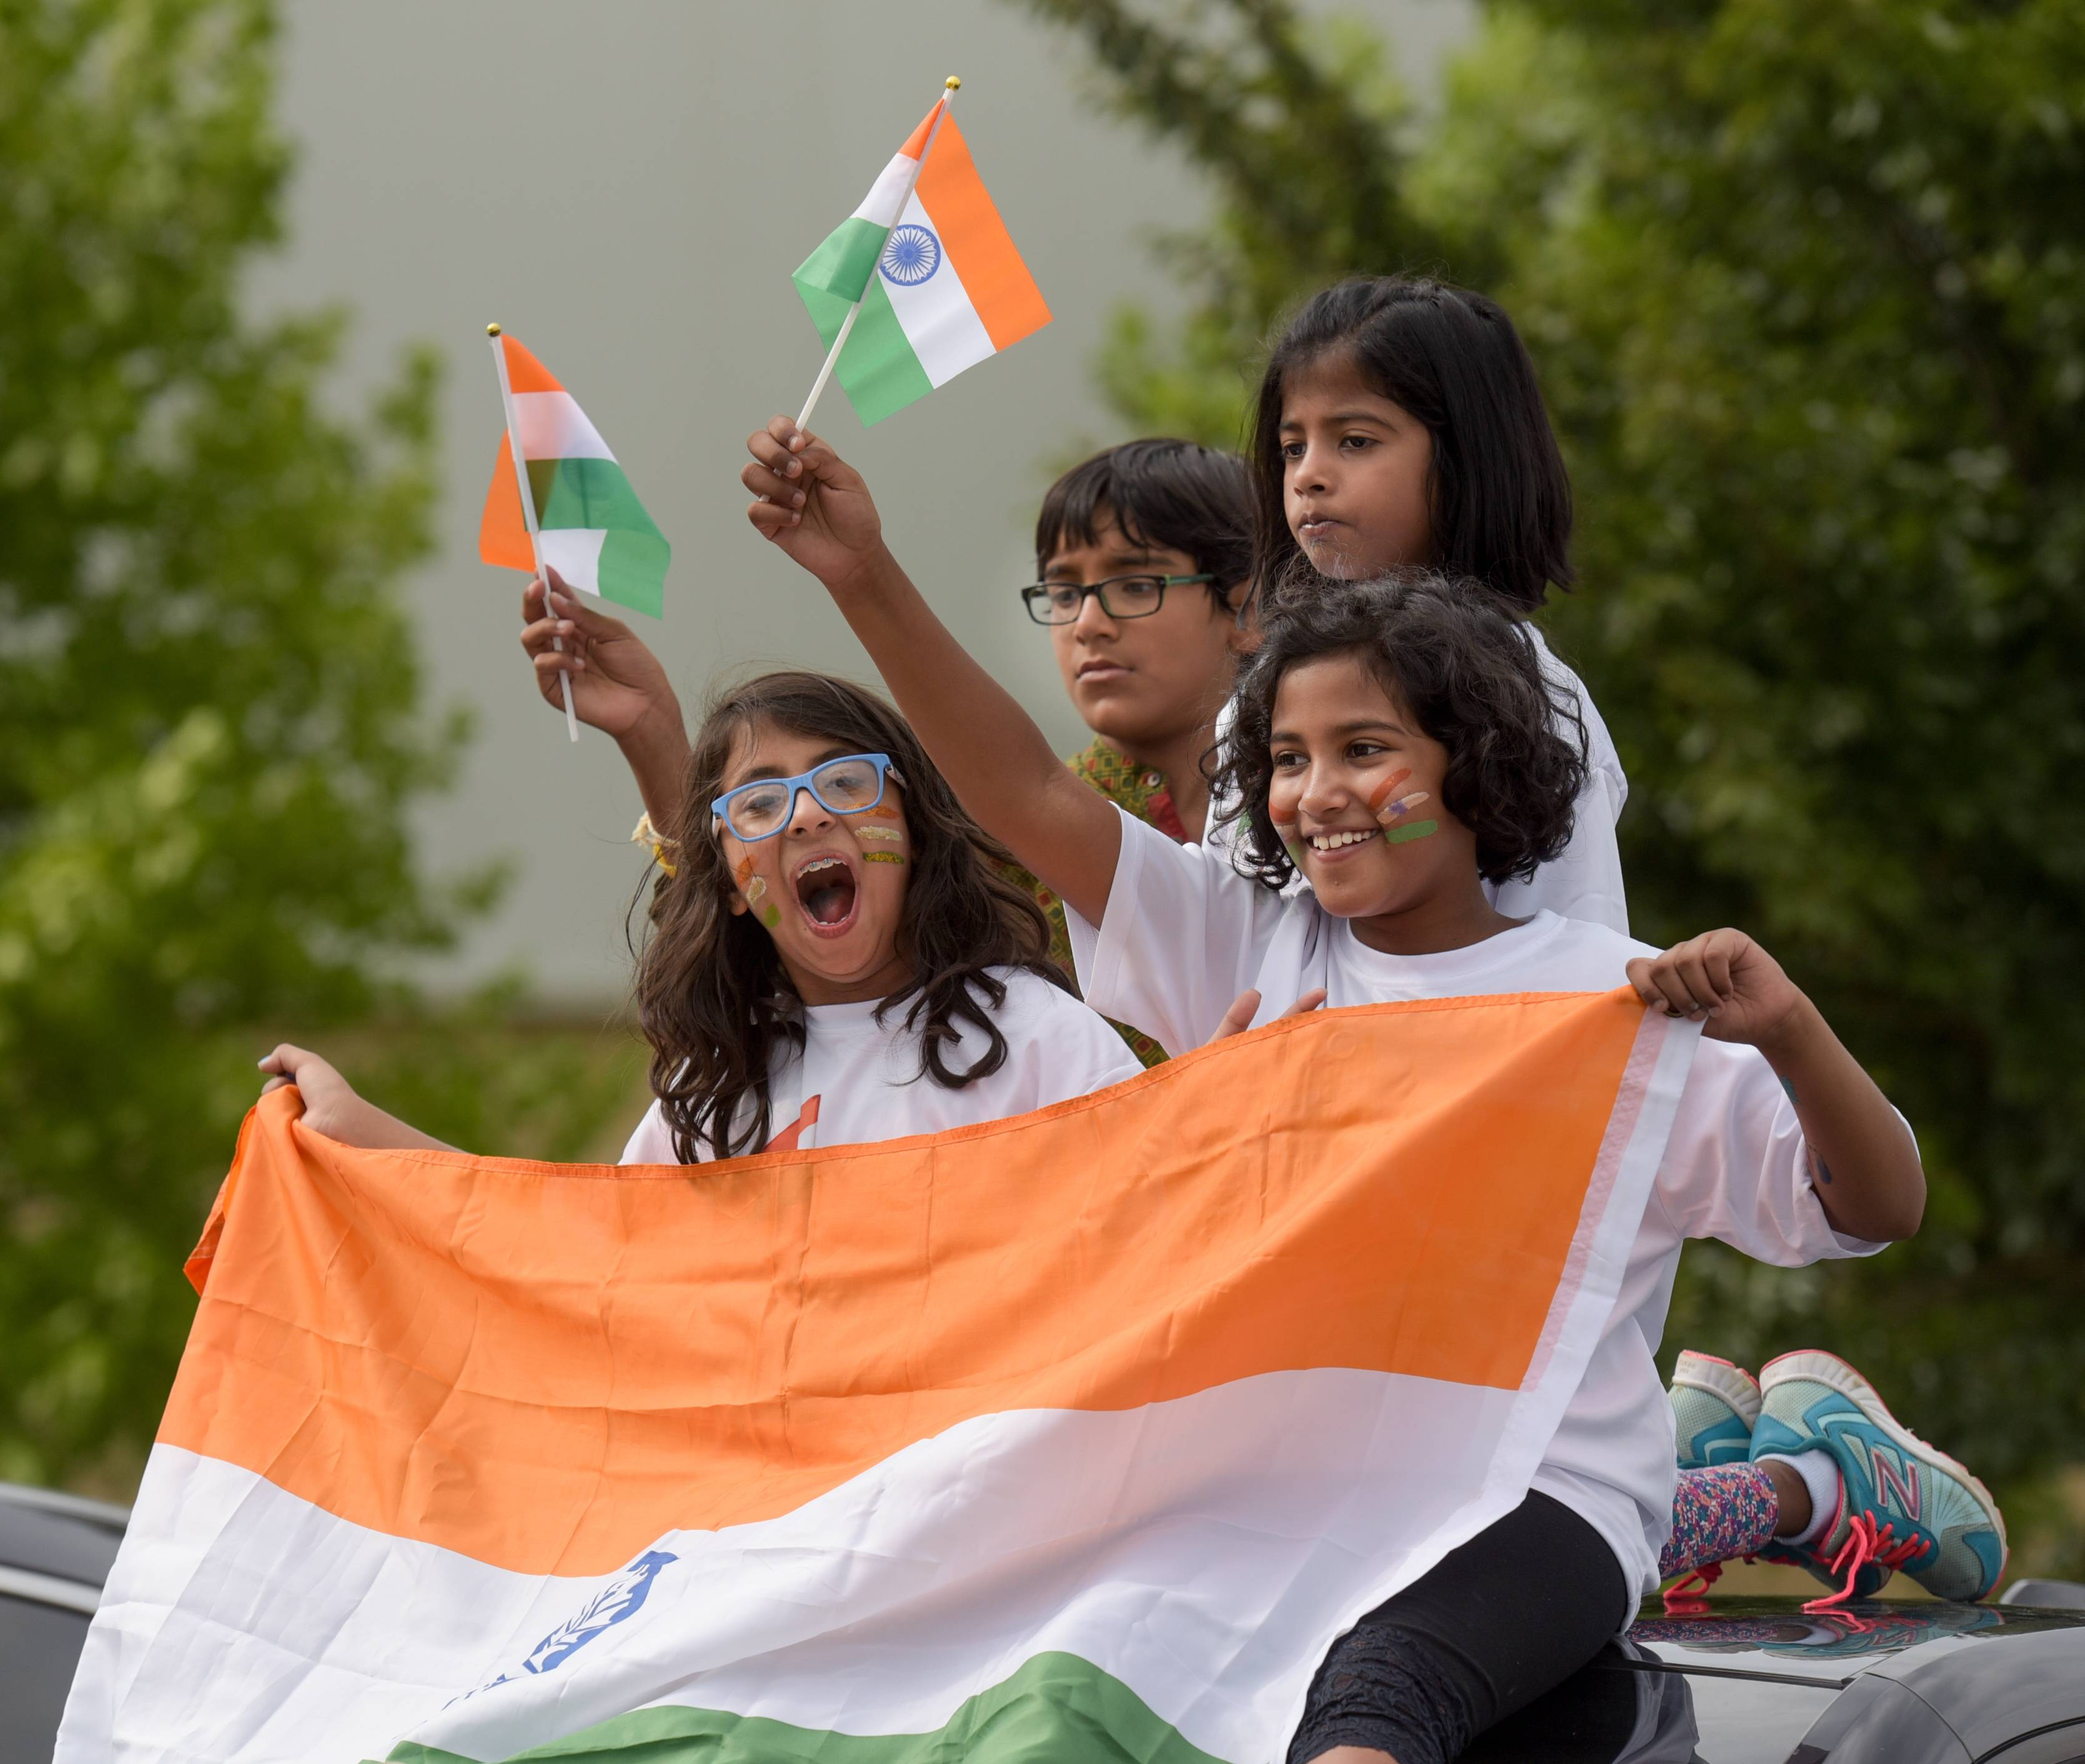 India Day brings colorful celebration of culture to Naperville